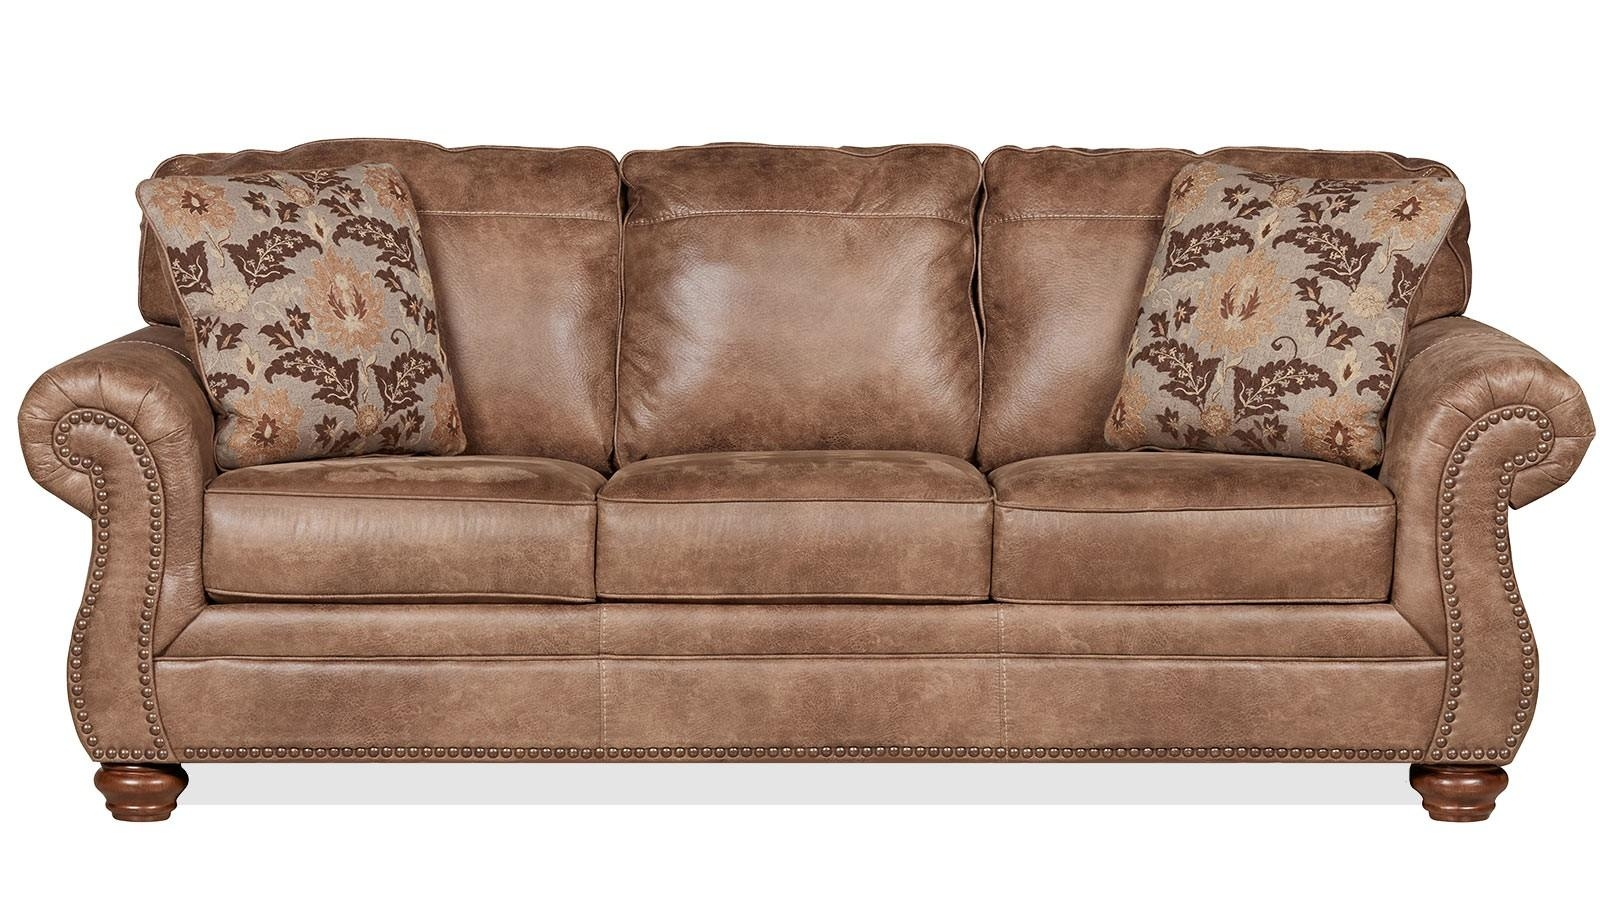 Sofas Center : Seaterfas For Sale Aptdeco Clayton Marcus Fabric Intended For Clayton Marcus Sofas (Image 19 of 20)